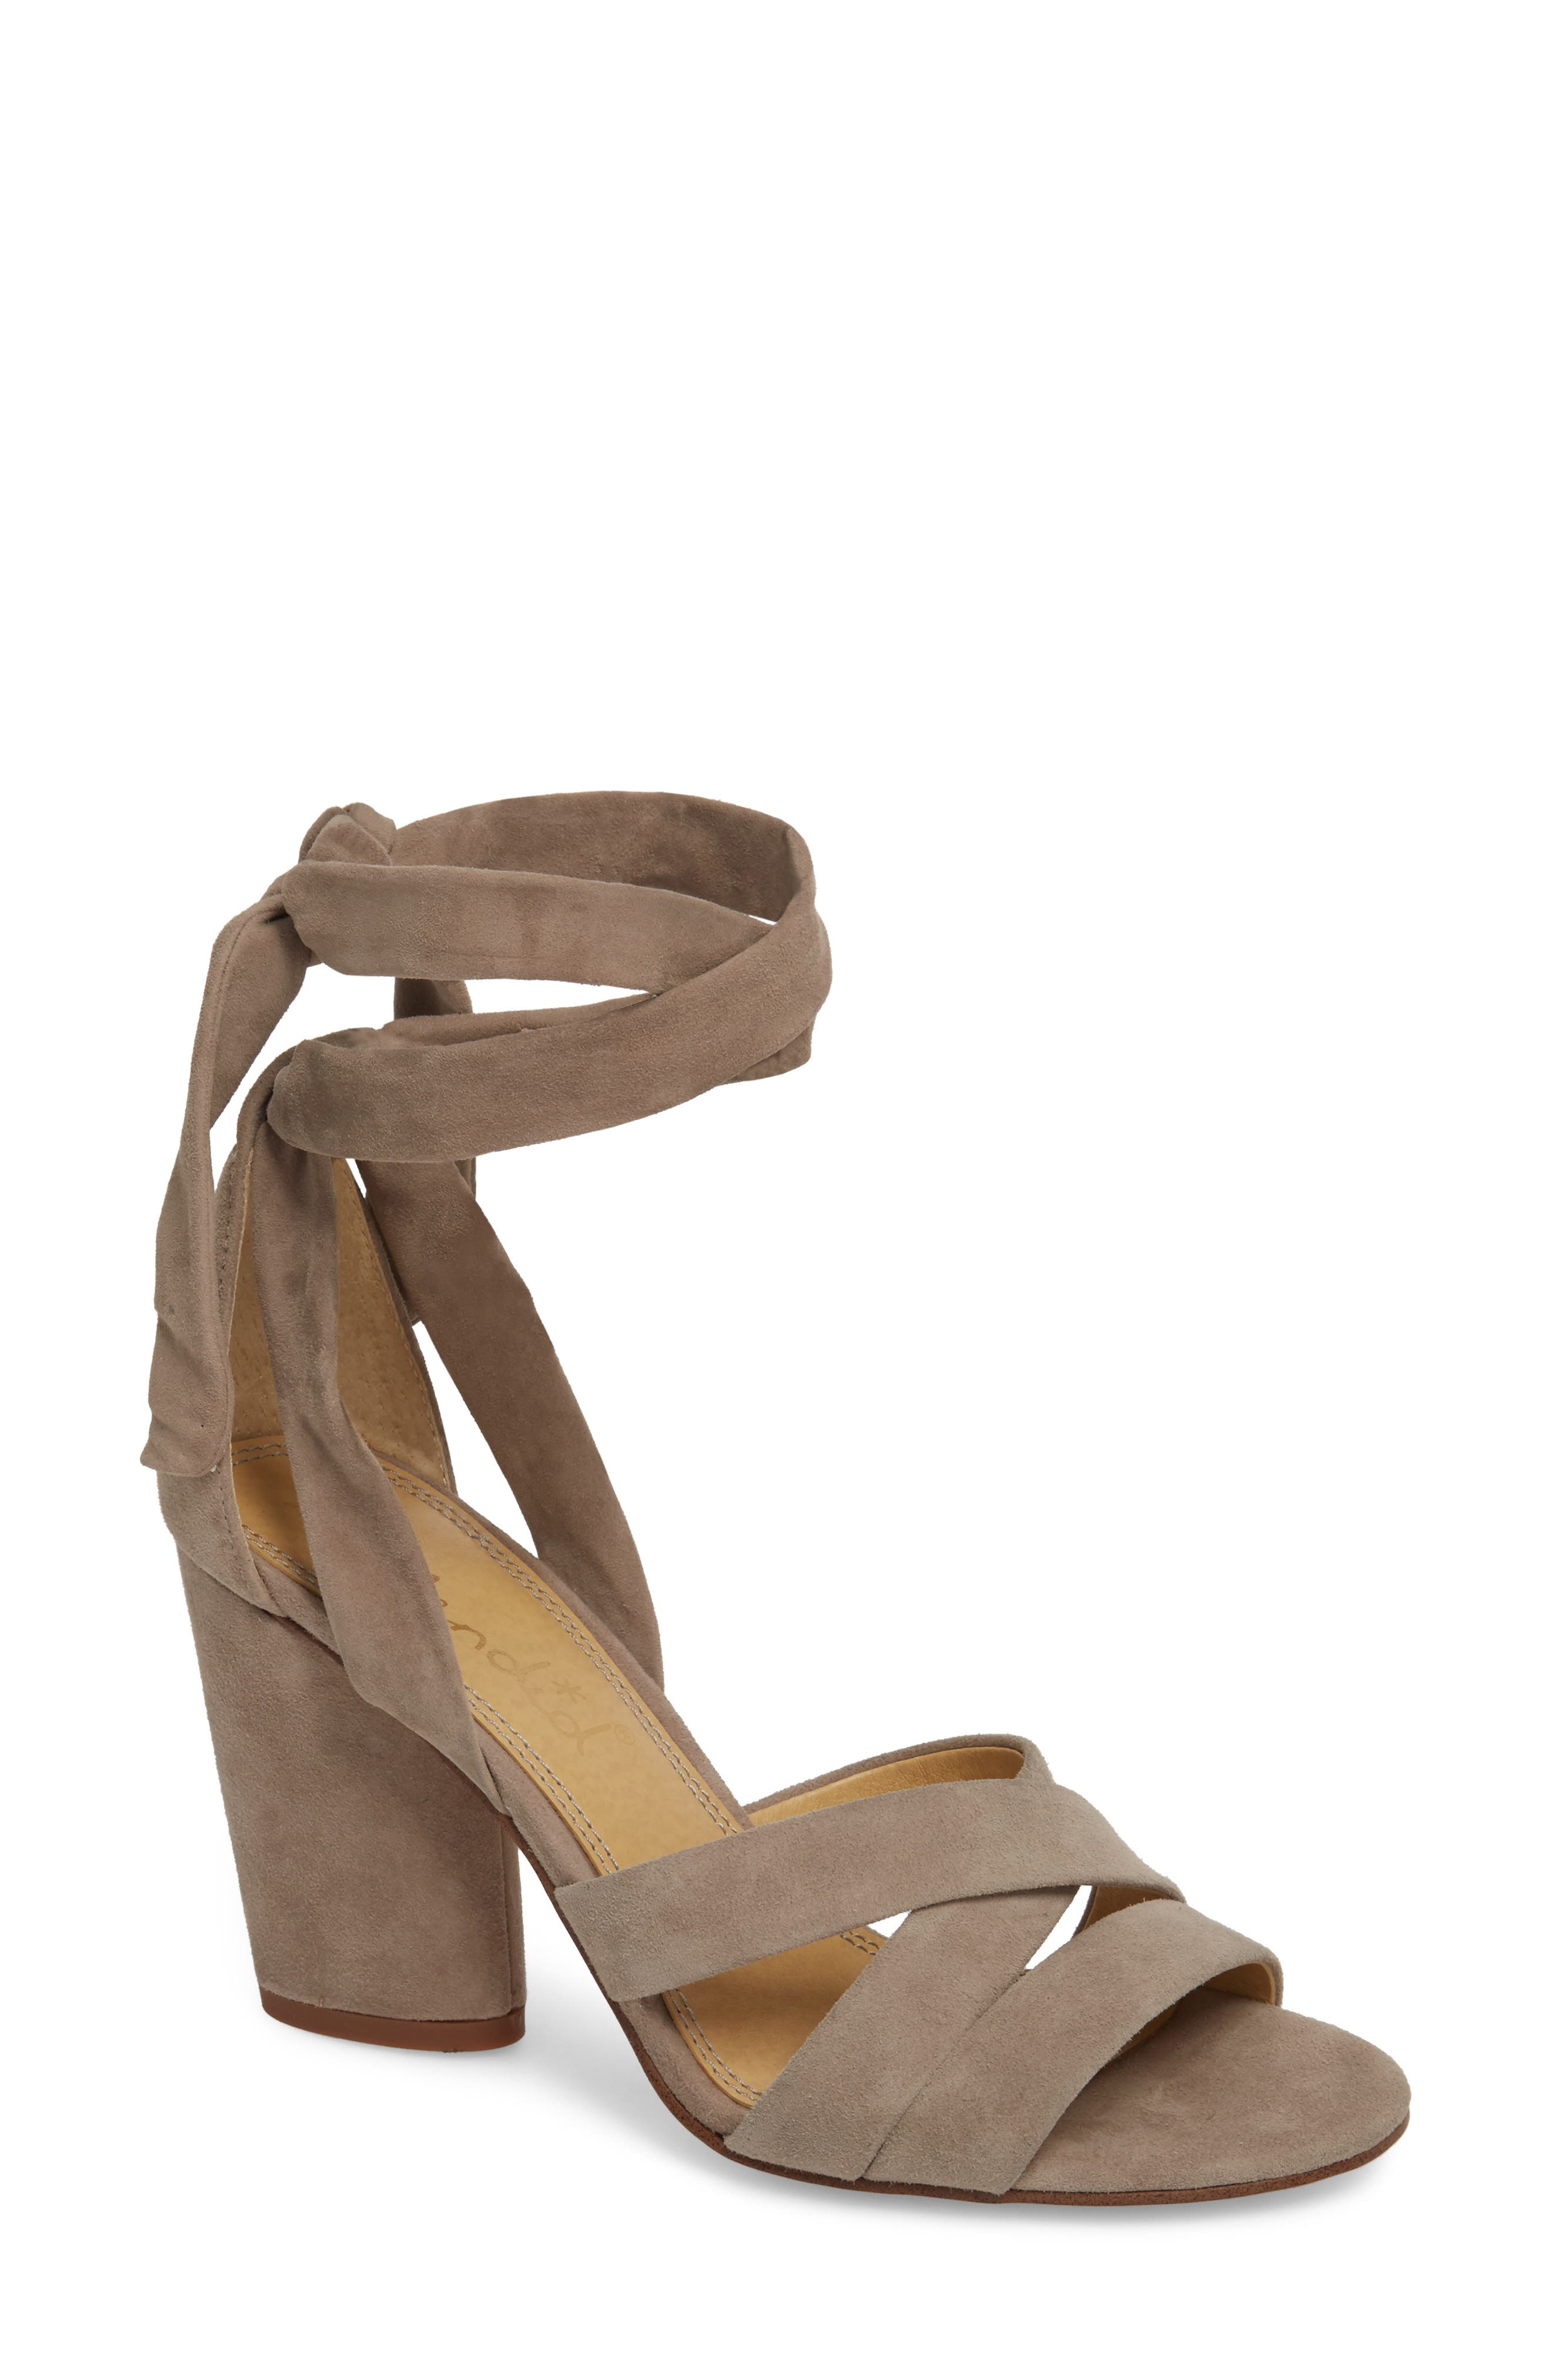 Fergie Lace-Up Sandal,                         Main,                         color, TAUPE SUEDE